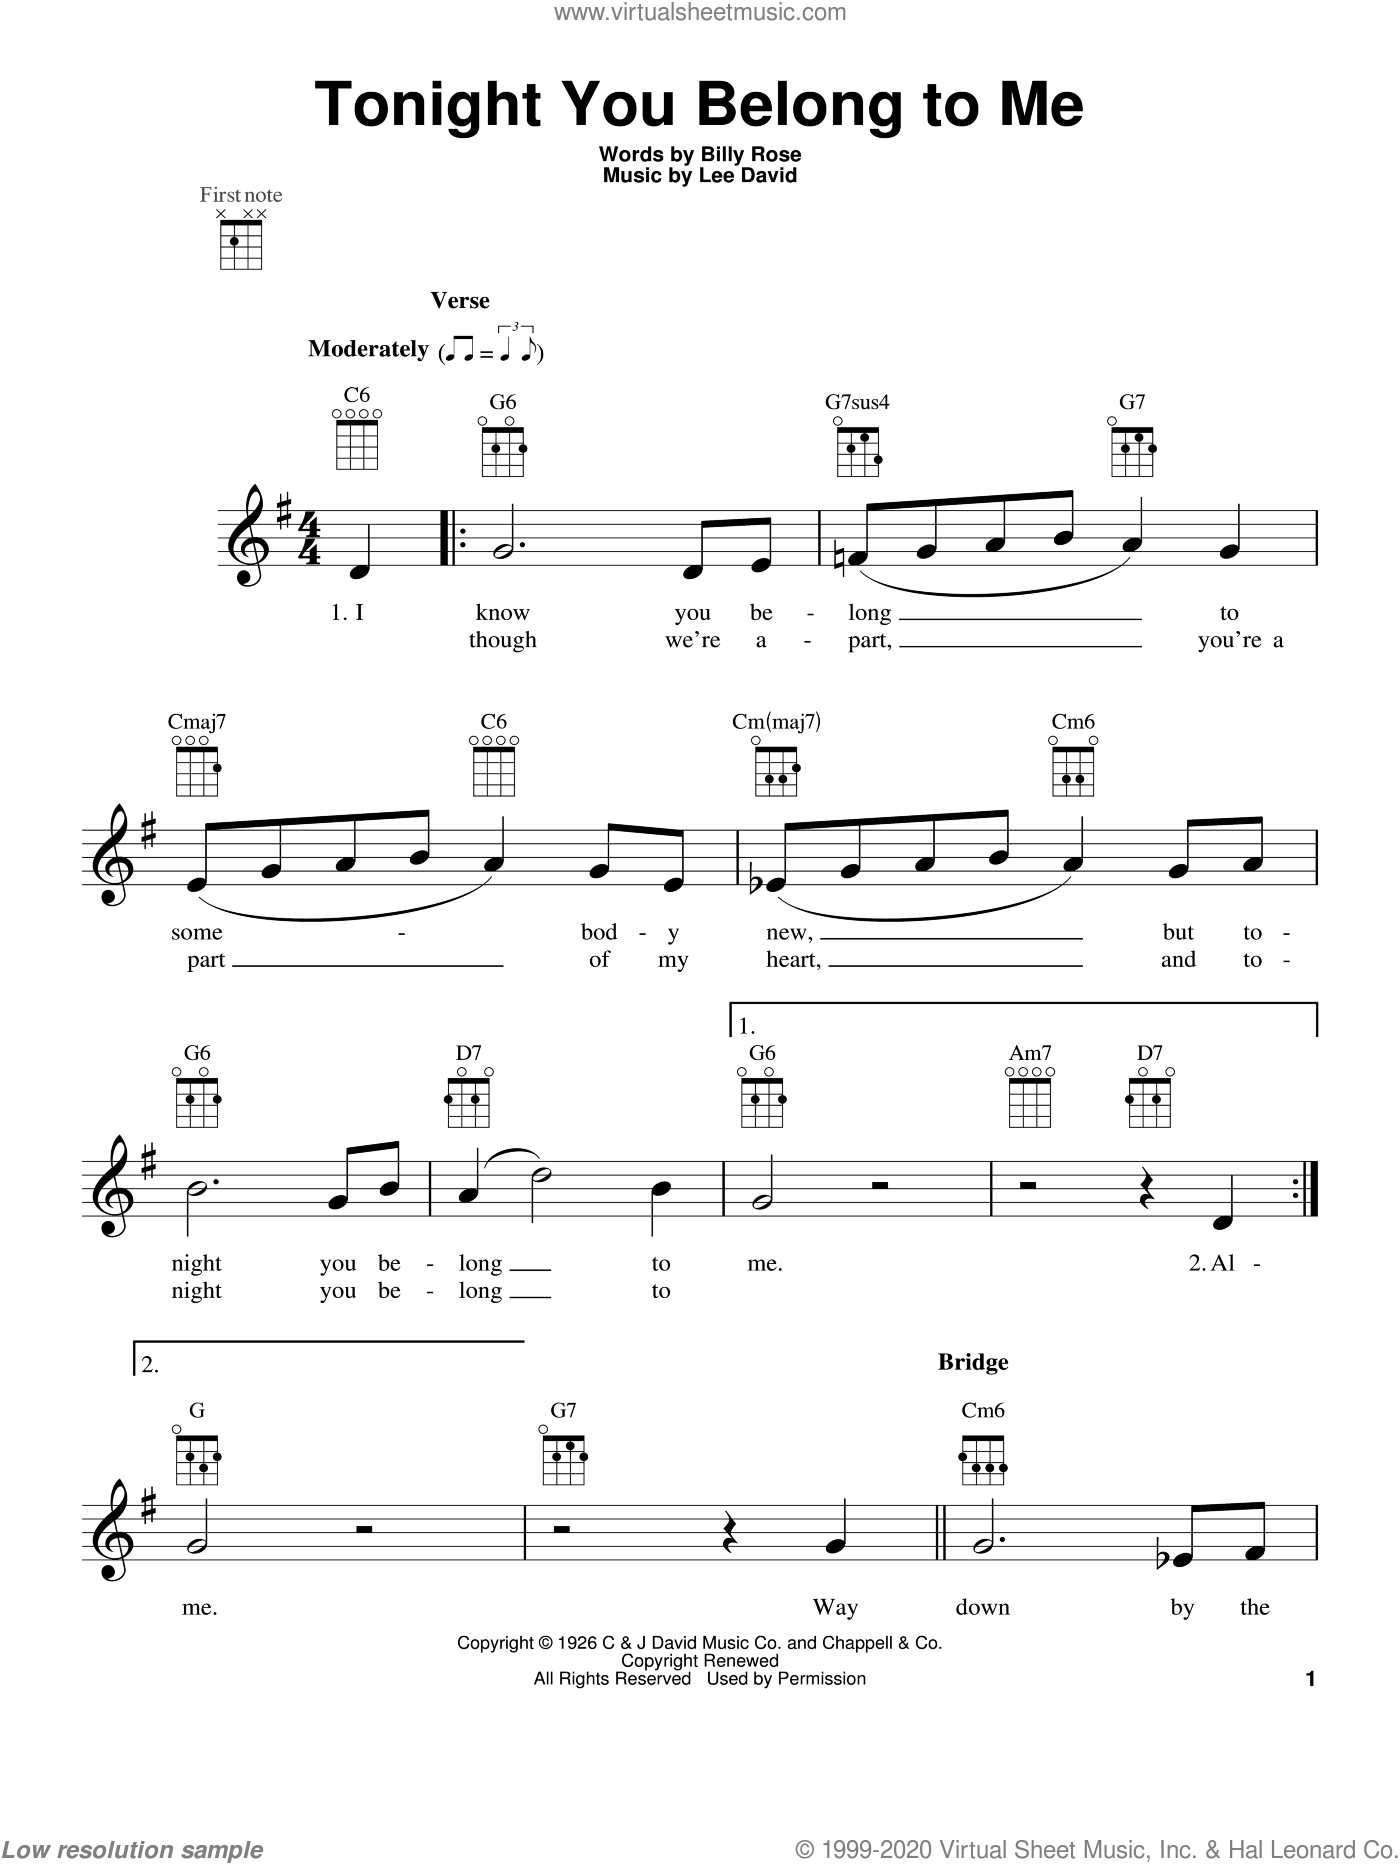 Tonight You Belong To Me sheet music for ukulele by Patience & Prudence, intermediate skill level